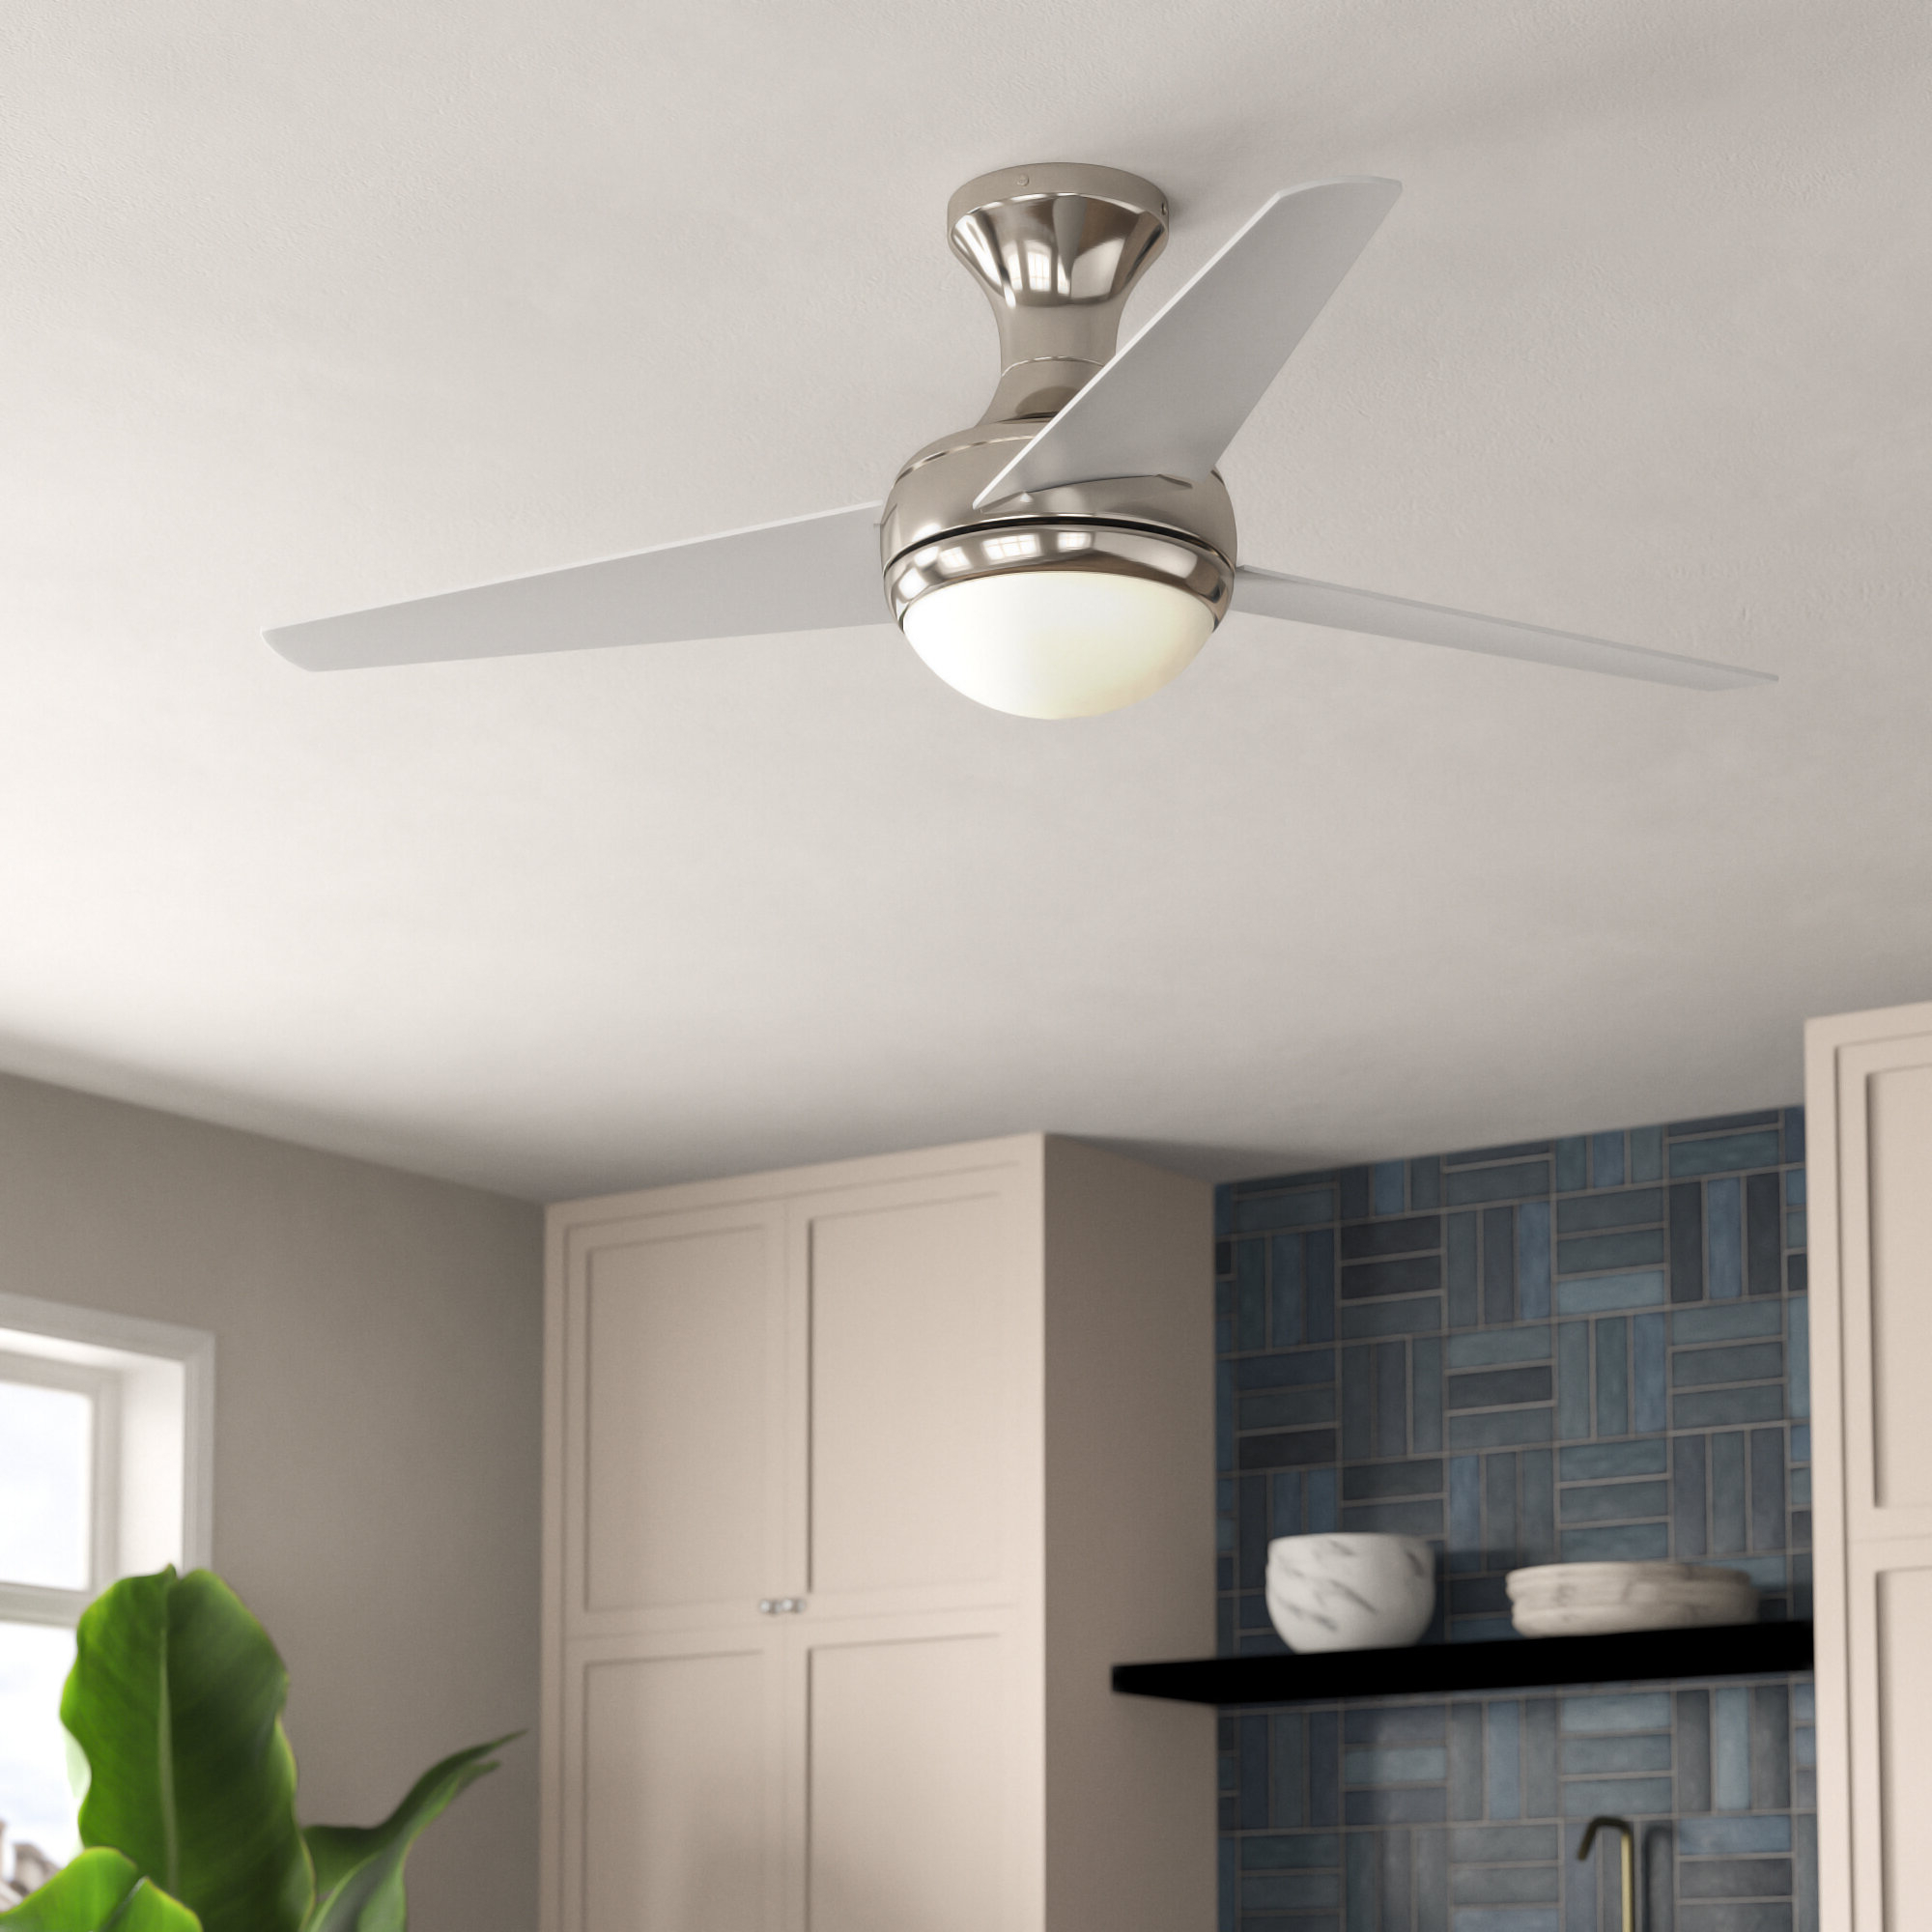 Heskett 3 Blade Led Ceiling Fans With Regard To Most Recent Modern Mercury Row Ceiling Fans (View 12 of 20)